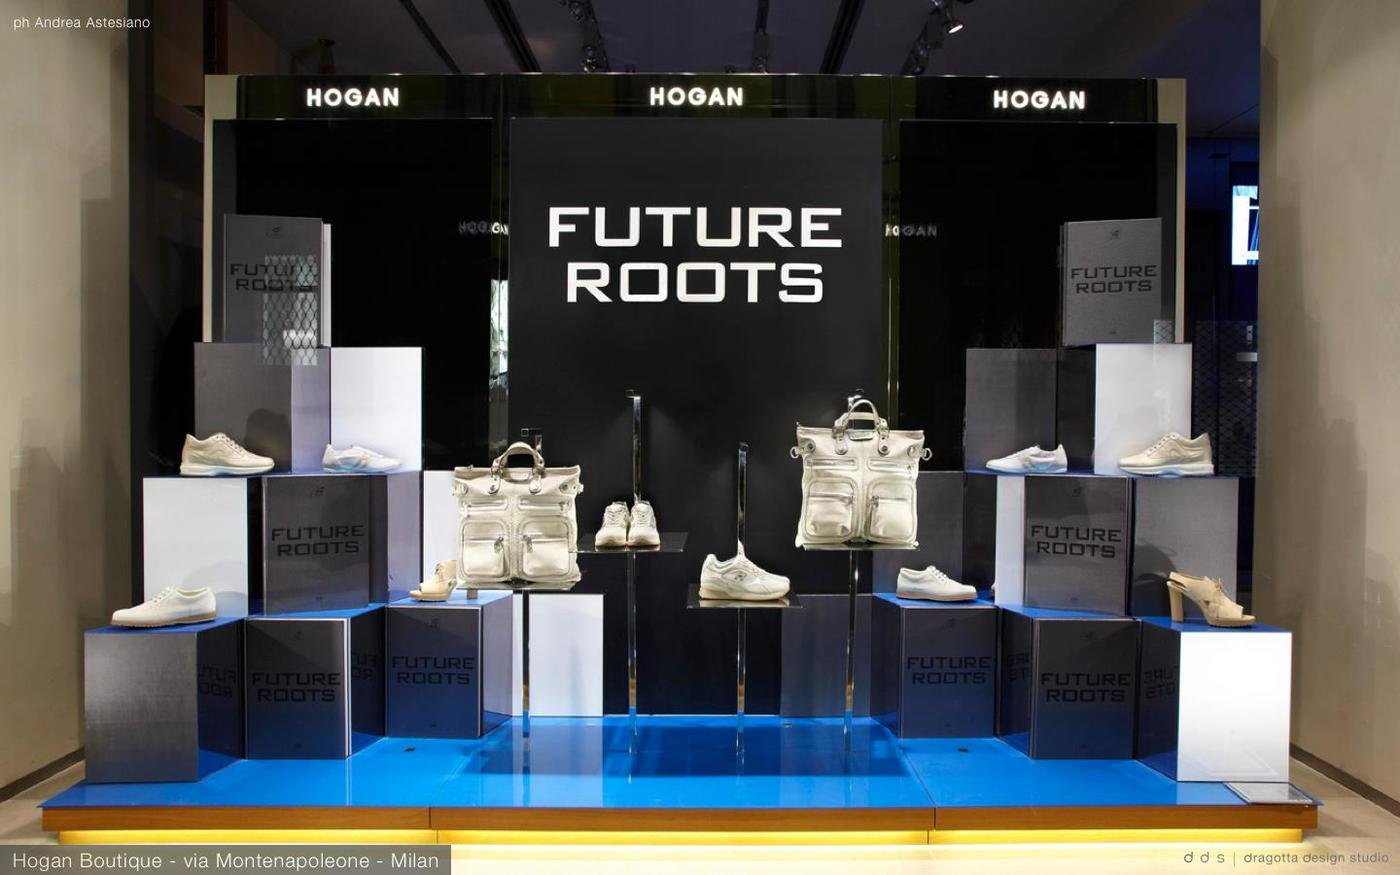 Tods Group - Hogan - window display for the event FUTURE ROOTS - boutique  Hogan Milan - Design of the window display 2b9fe7357ad